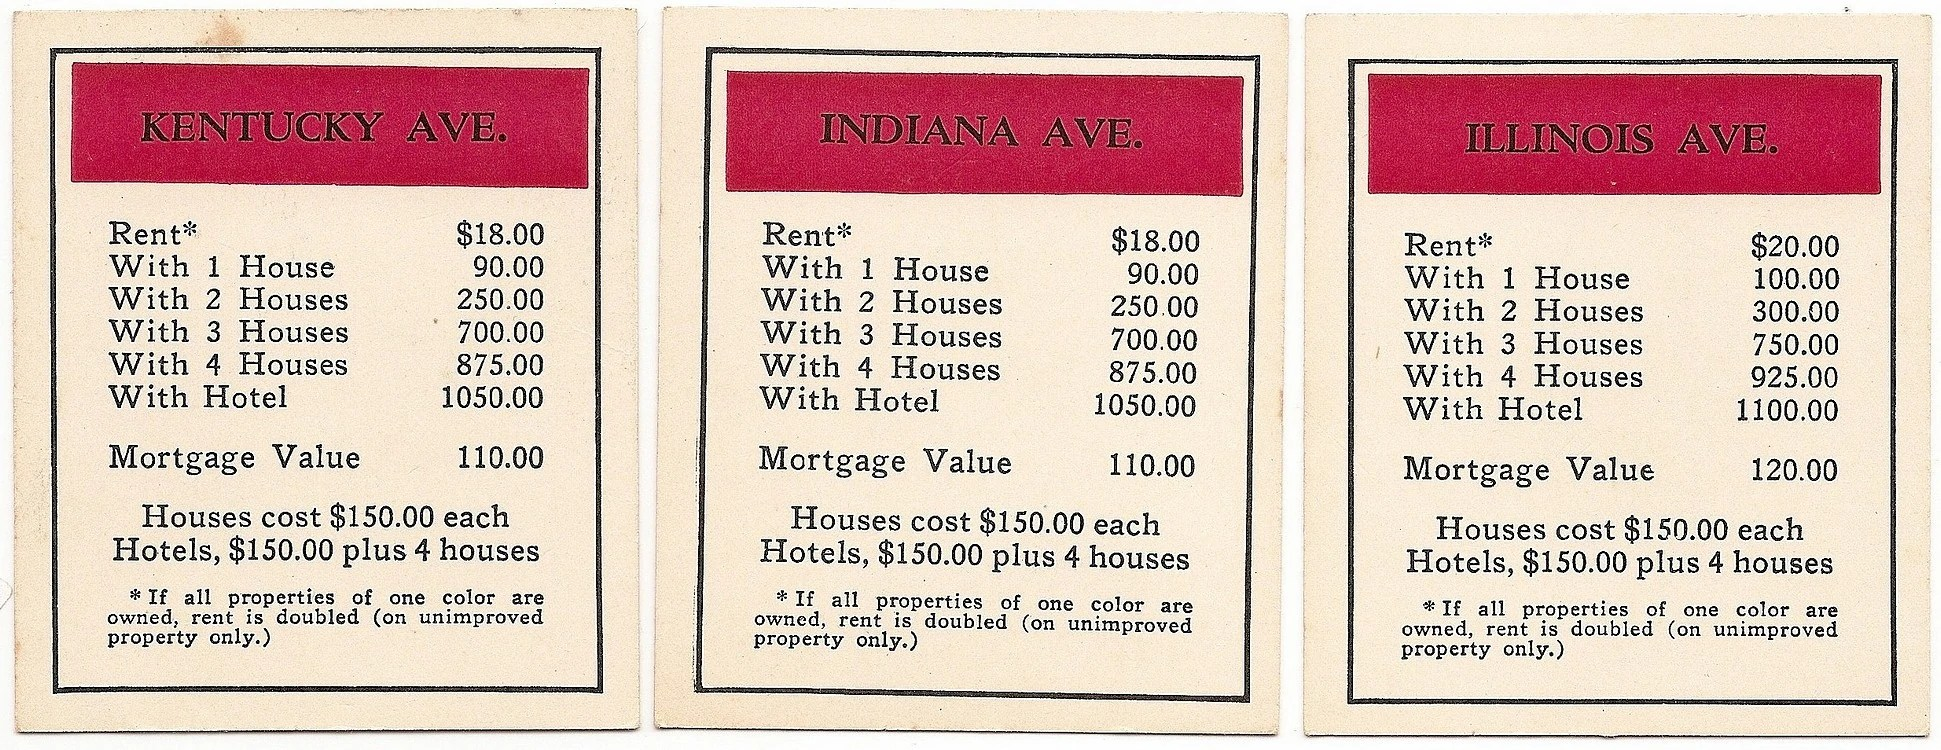 Red Color Group Properties Monopoly Wiki